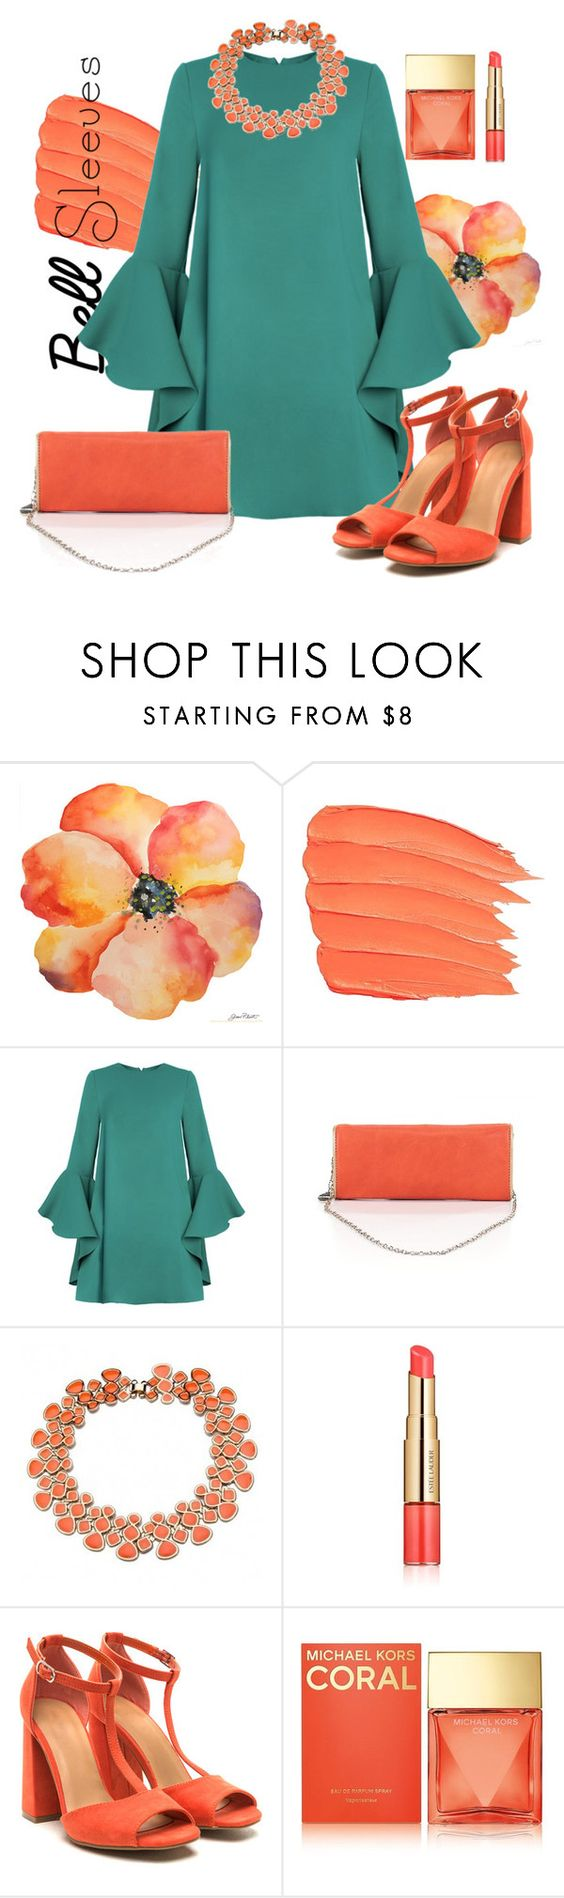 """""""Spring Coral Bell..."""" by lepavotrouge ❤ liked on Polyvore featuring Big Buddha, Estée Lauder and Michael Kors"""